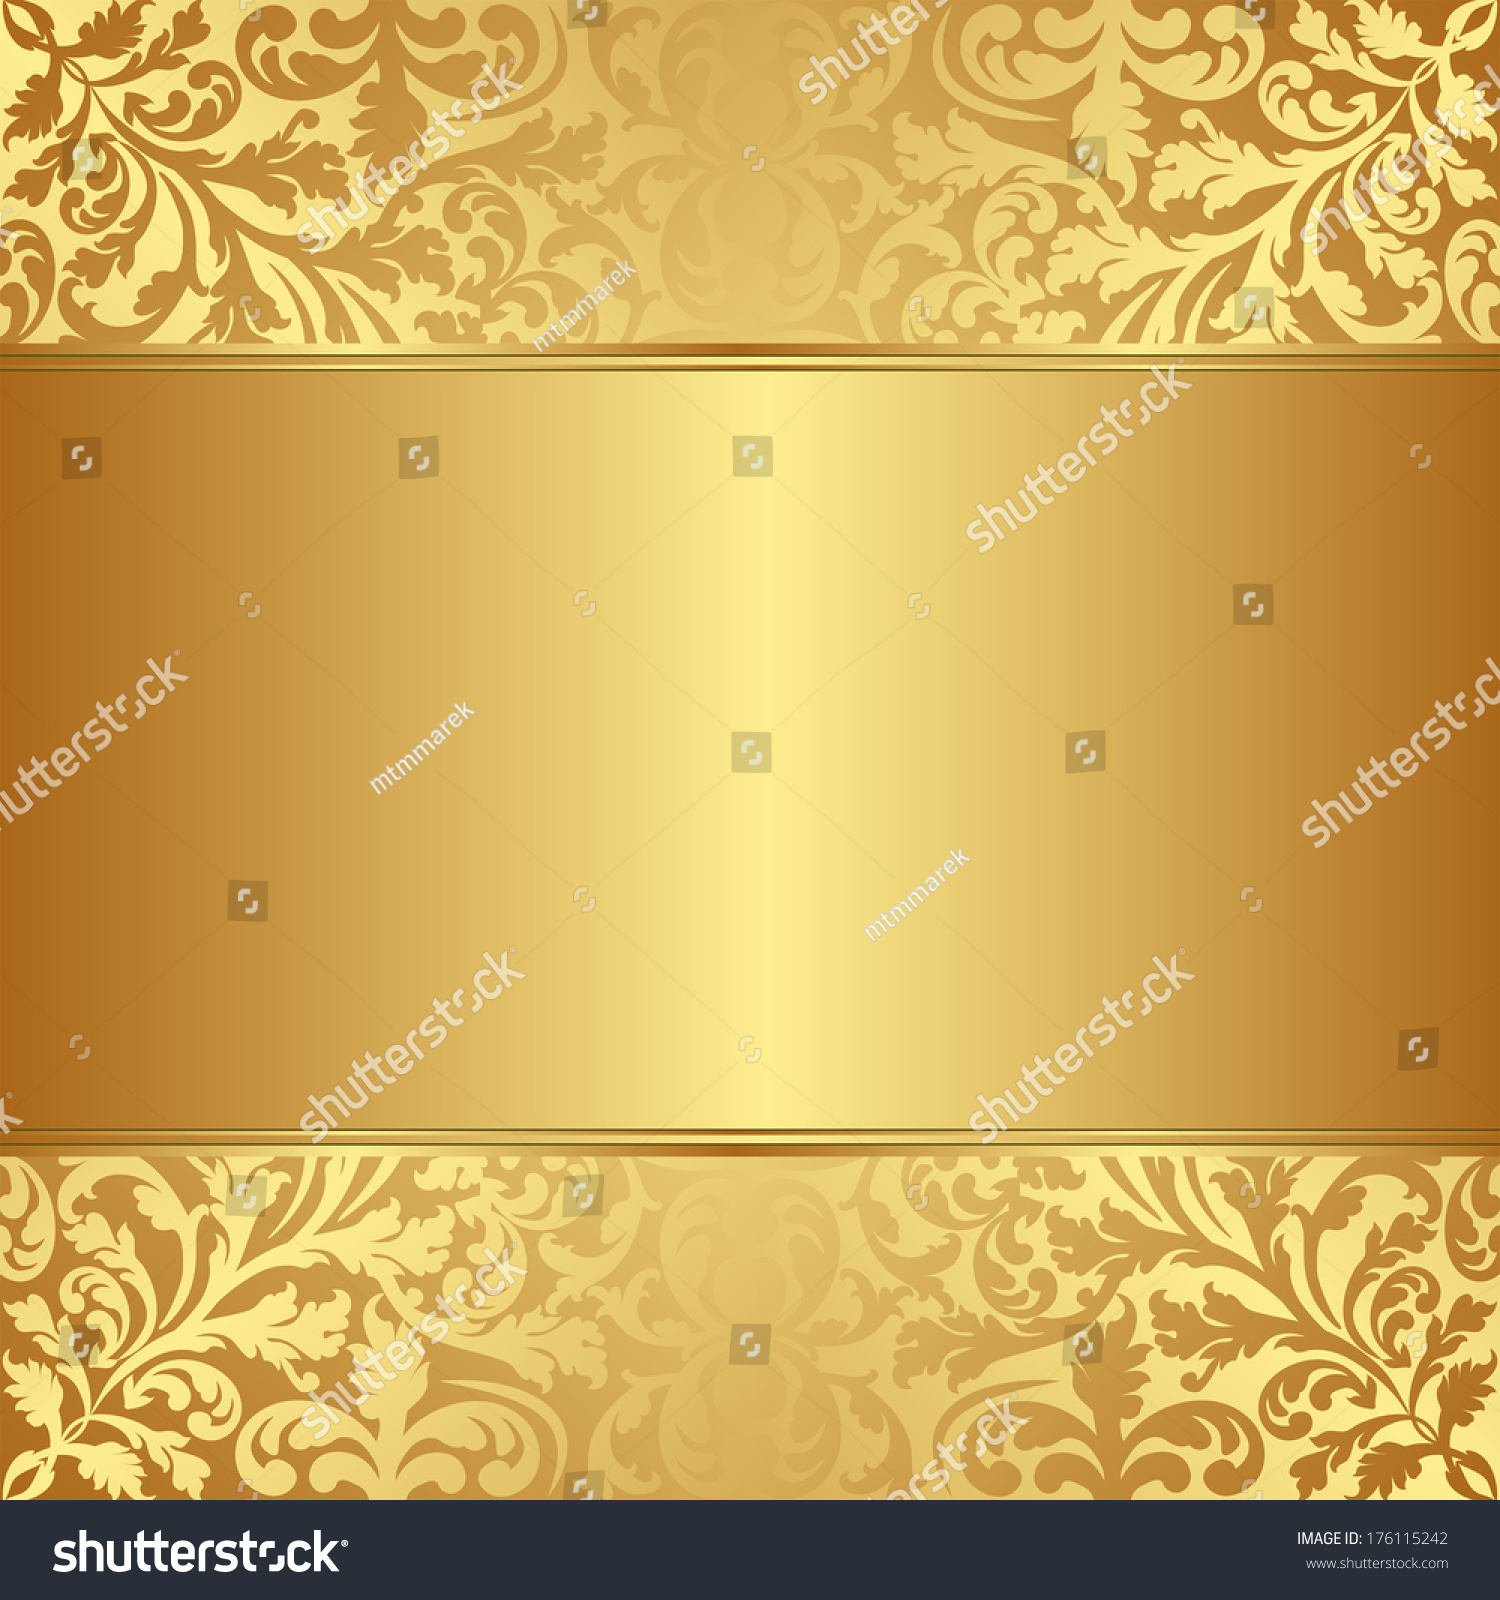 Gold Ornaments Background gold background floral ornaments stock ...